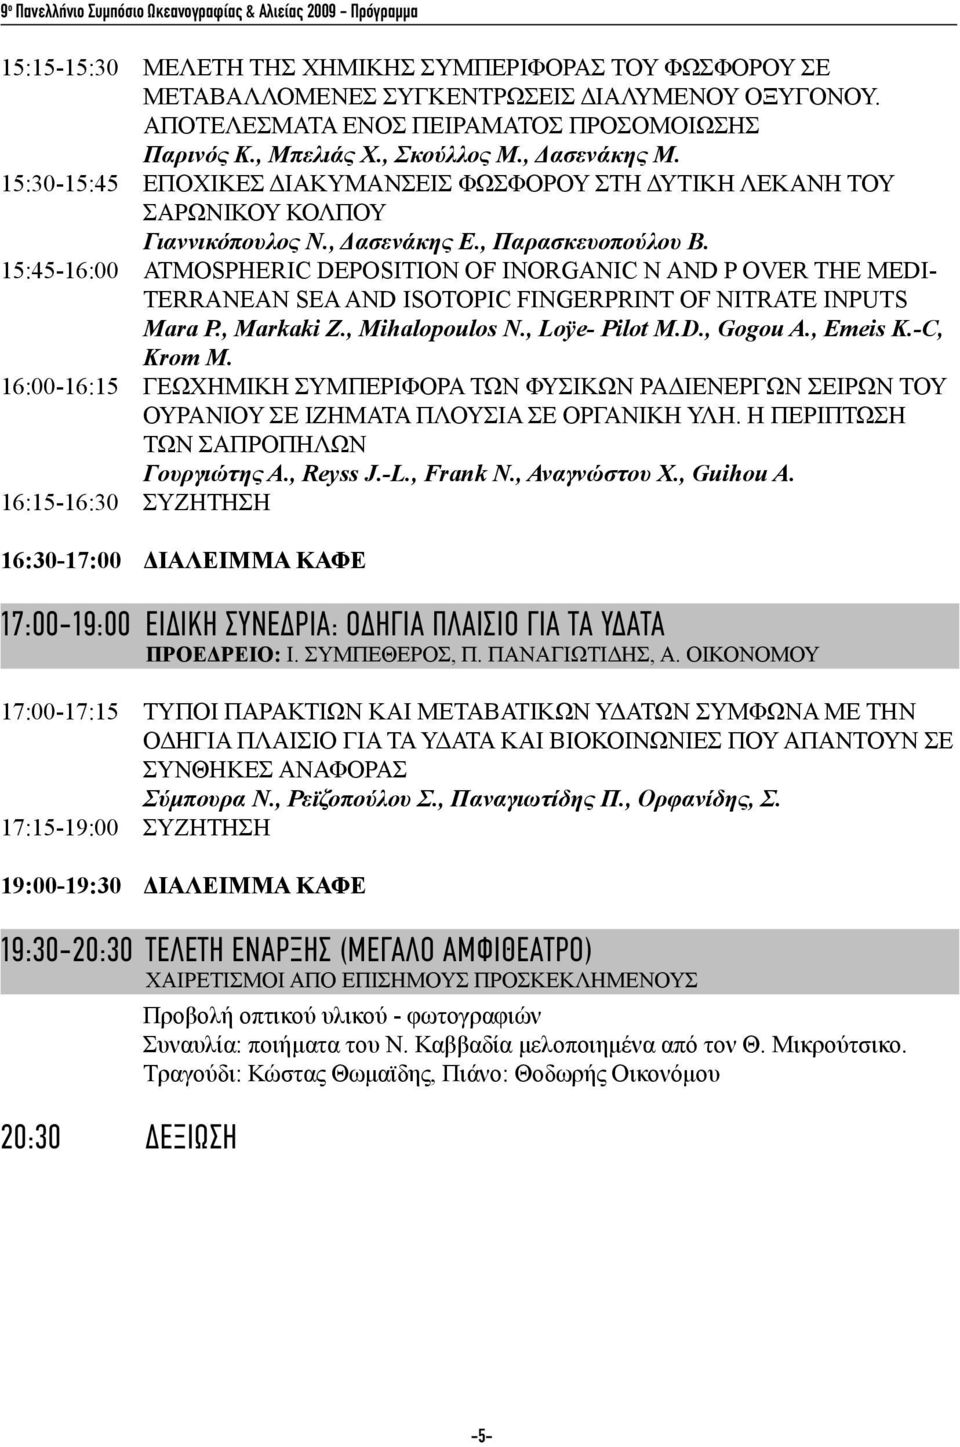 , Δασενάκης Ε., Παρασκευοπούλου Β. 15:45-16:00 ATMOSPHERIC DEPOSITION OF INORGANIC N AND P OVER THE MEDI- TERRANEAN SEA AND ISOTOPIC FINGERPRINT OF NITRATE INPUTS Mara P., Markaki Z., Mihalopoulos N.